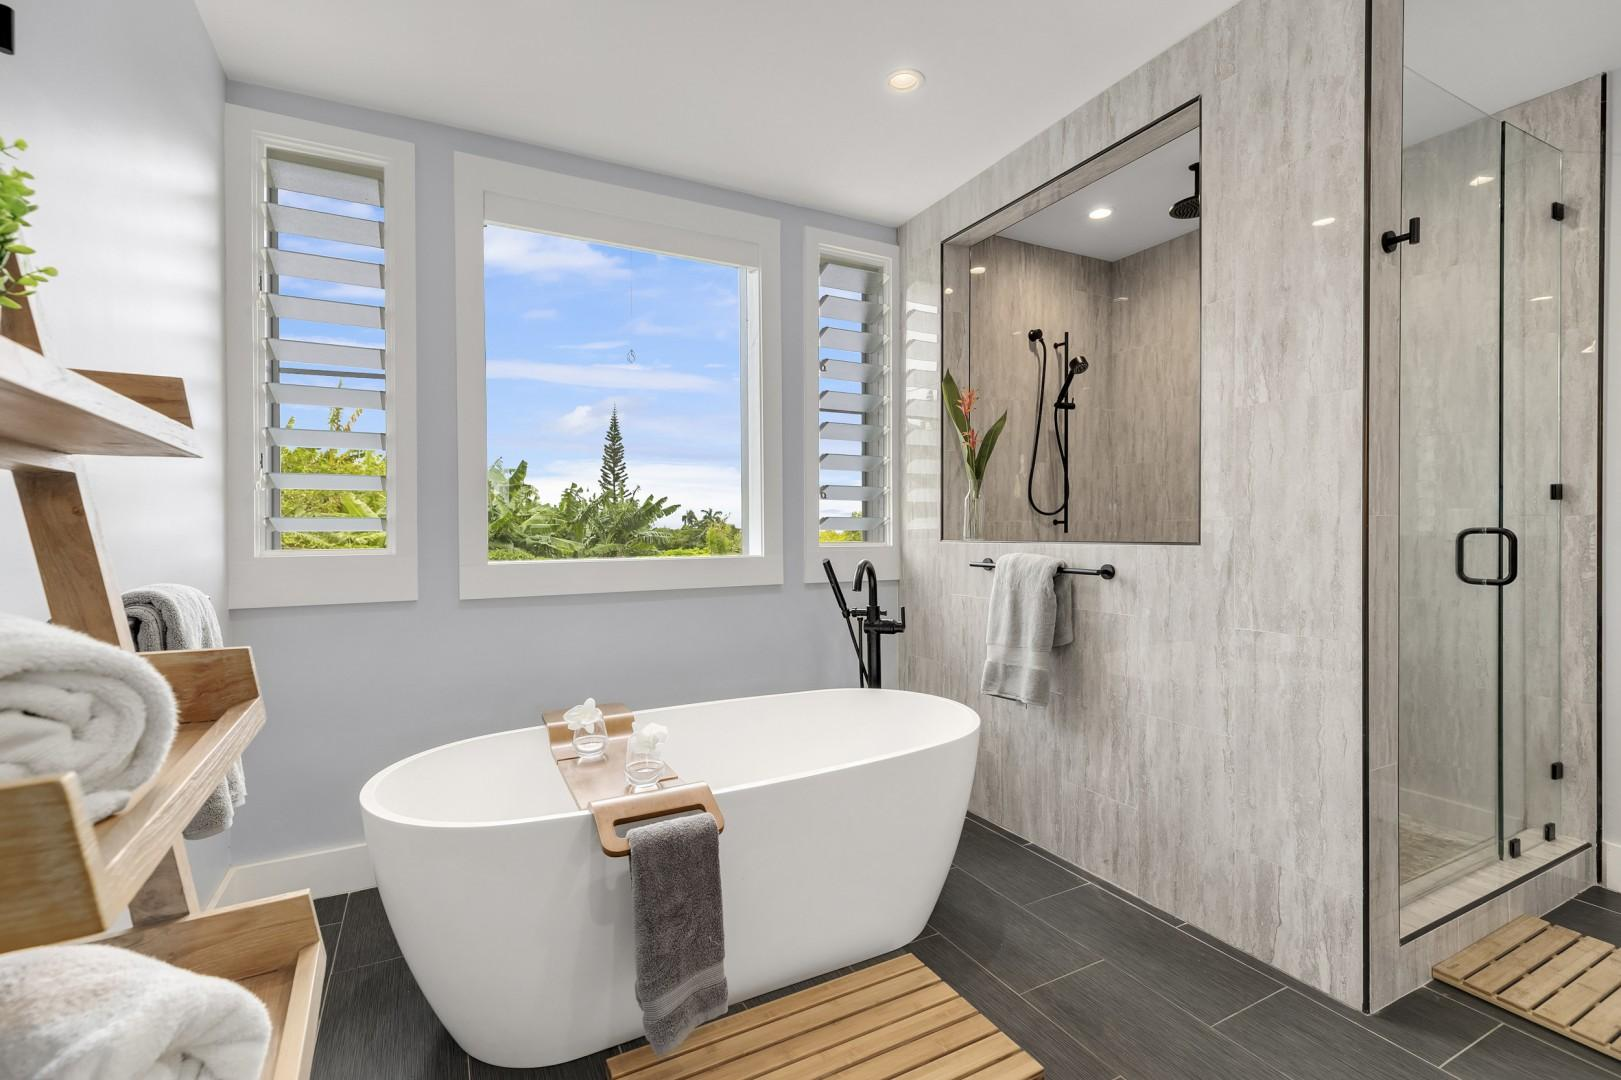 Master bath with soaking tub, custom shower and views of the greenery outdoors.